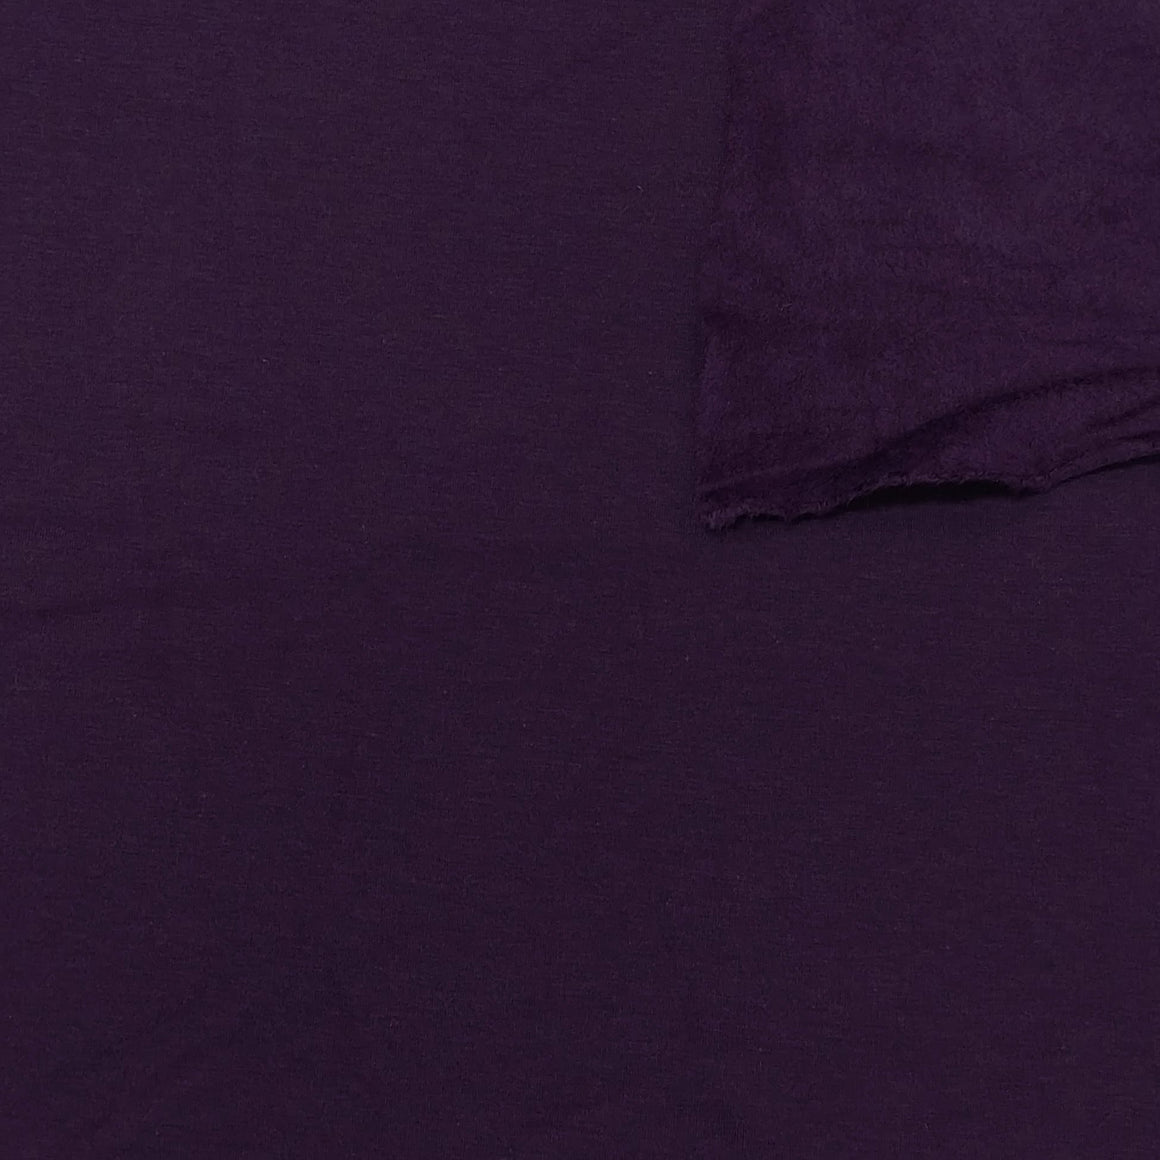 Eggplant Purple Bamboo Cotton Spandex 4 Way Stretch Sweatshirt Fleece - Raspberry Creek Fabrics